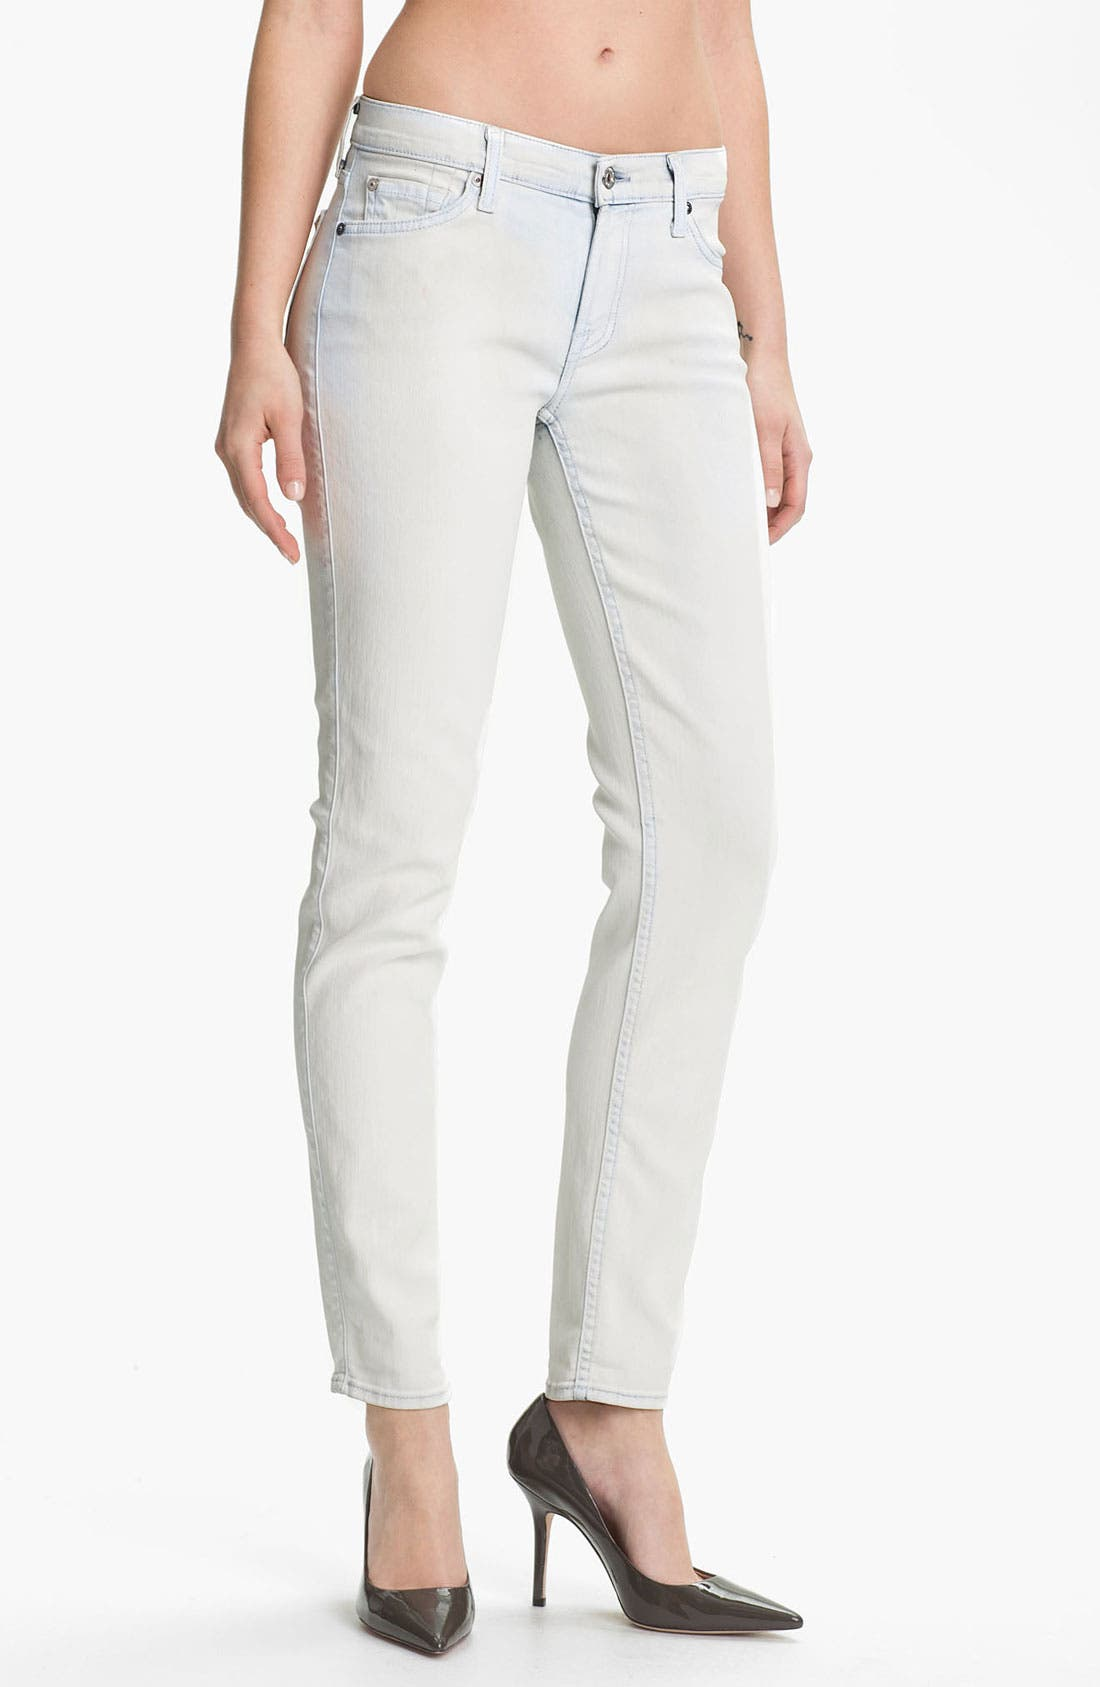 Alternate Image 1 Selected - 7 For All Mankind® 'The Slim Cigarette' Coated Stretch Jeans (White Washed Denim)